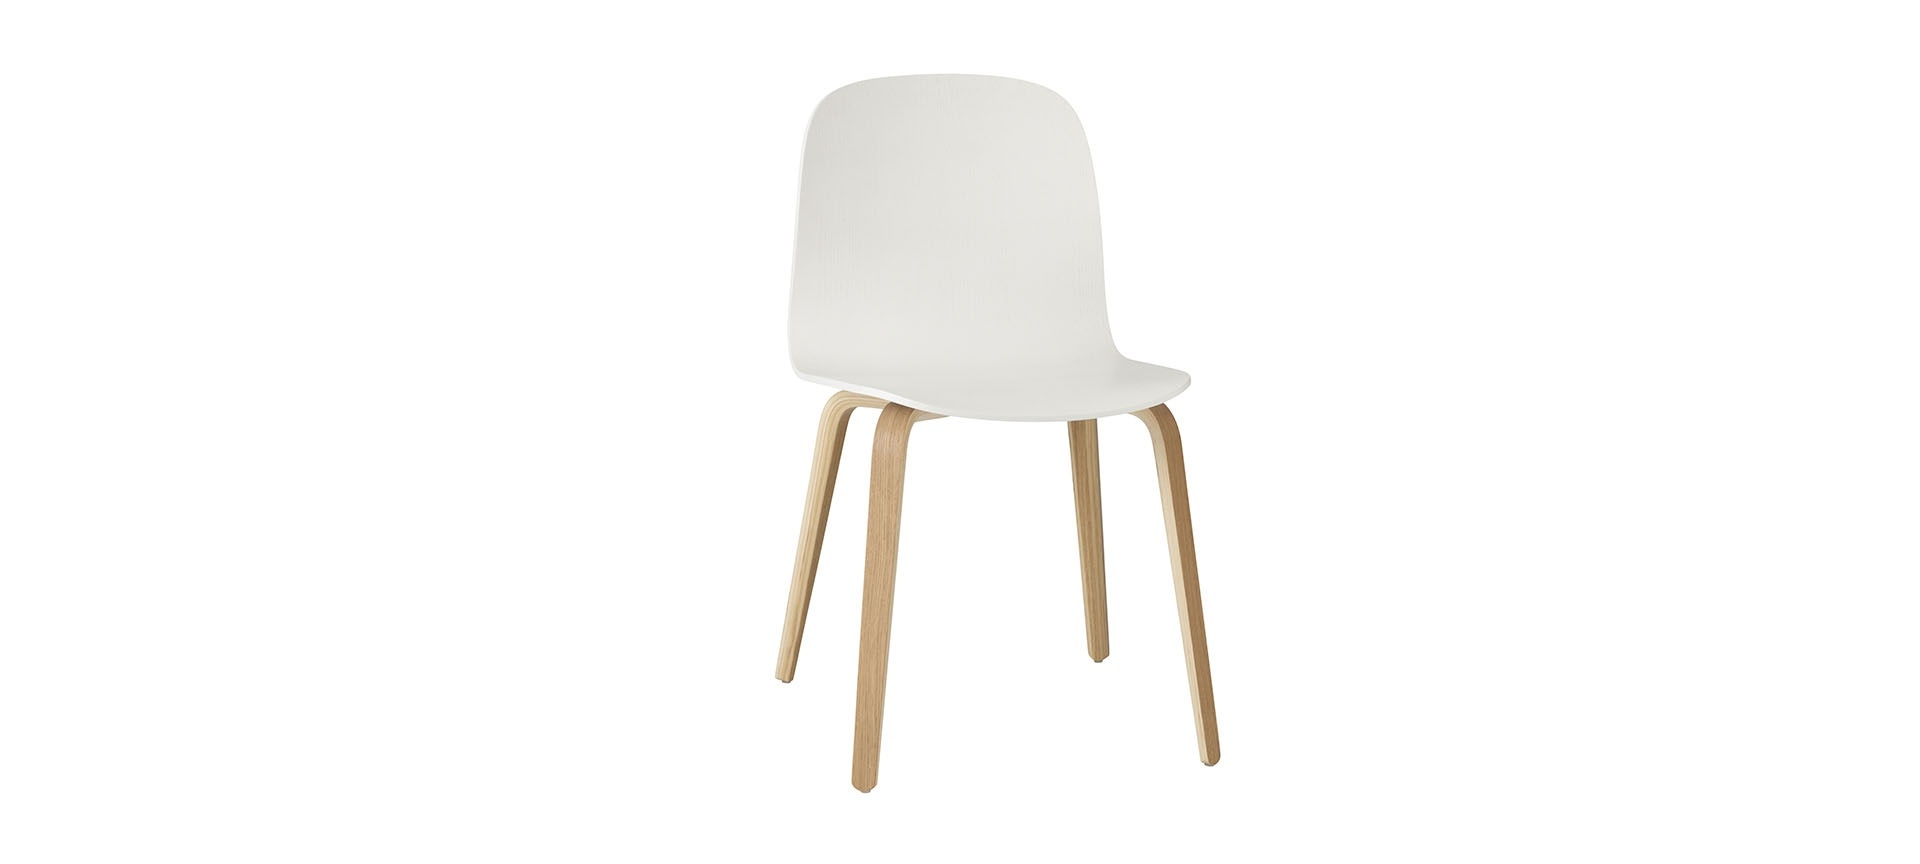 Chaise pied bois for Chaise cuir pied bois